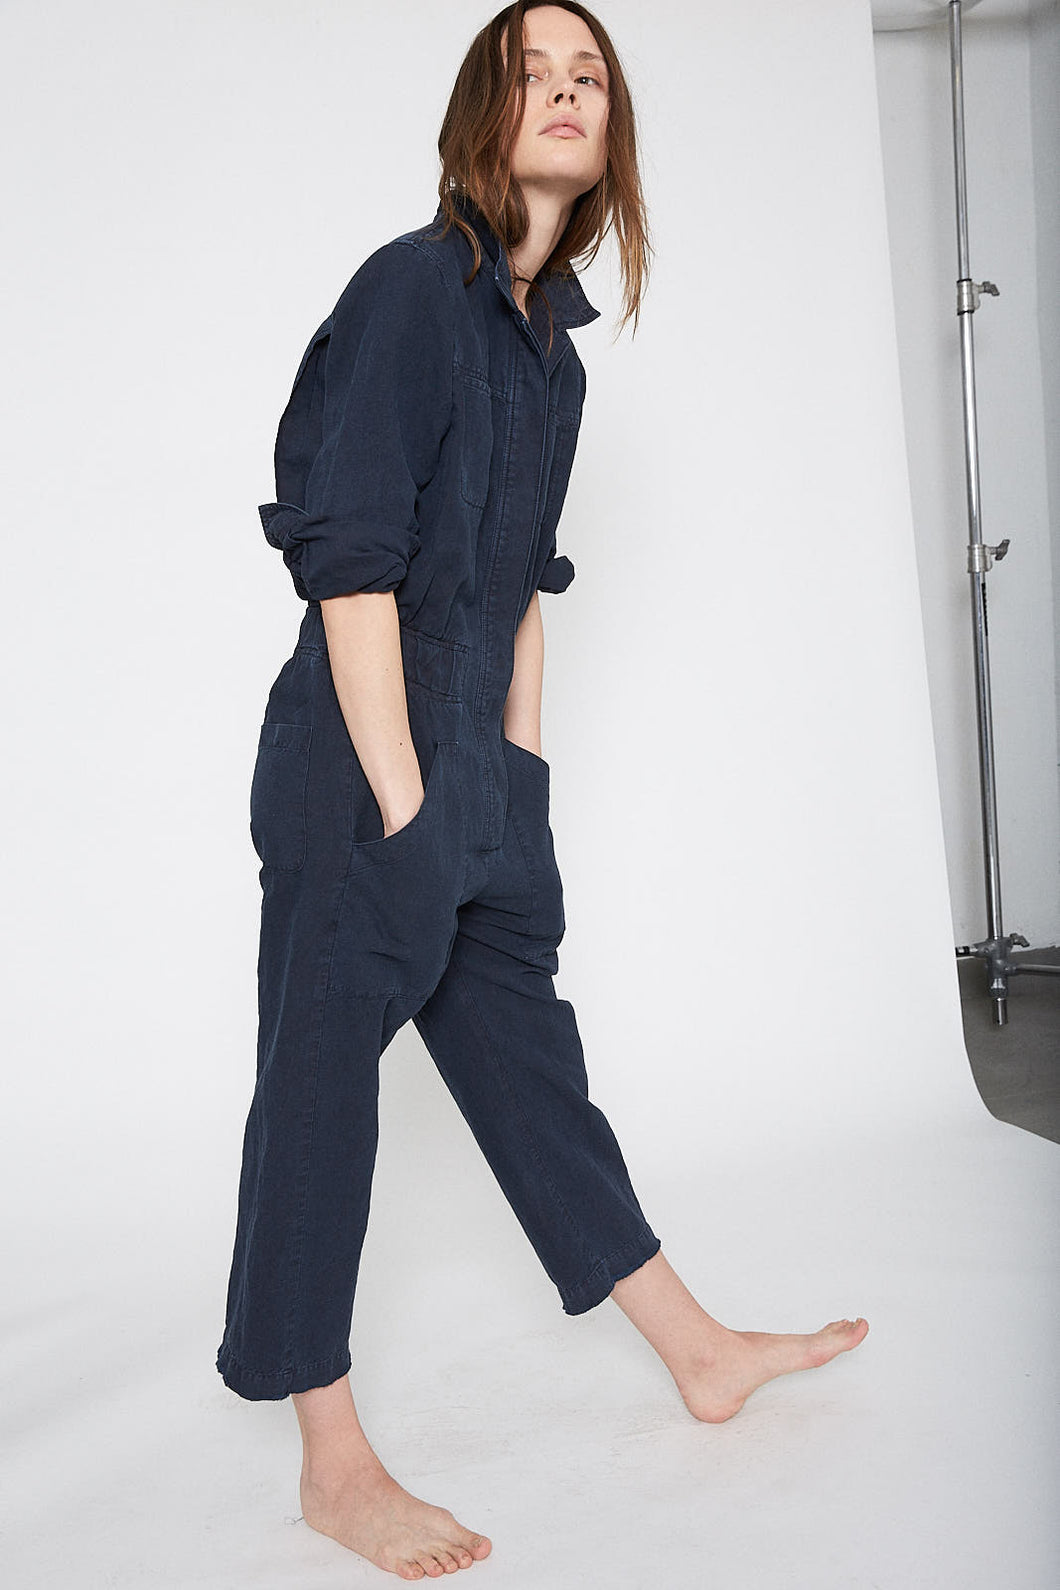 KES Merci Twill Jumpsuit - Stone Washed